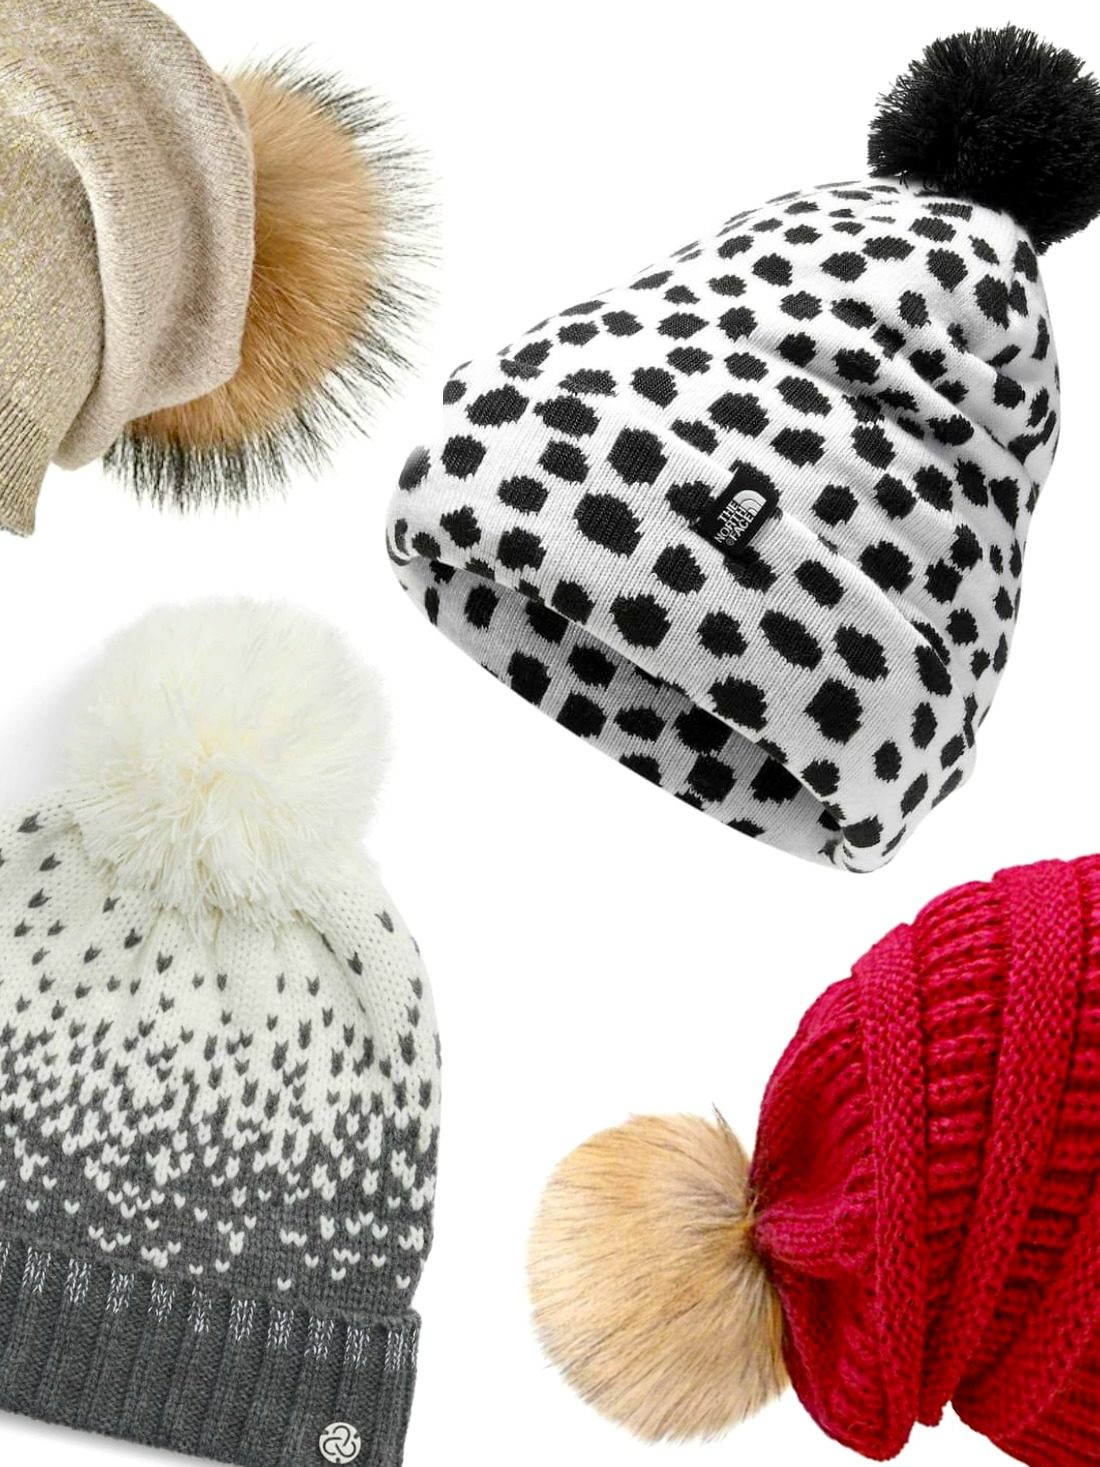 Winter is in full throttle which only means one thing - womens bobble hat is back in its bright, colorful glory. Afraid you might not find your fit and fancy? Just wait until you see our 10 best list!